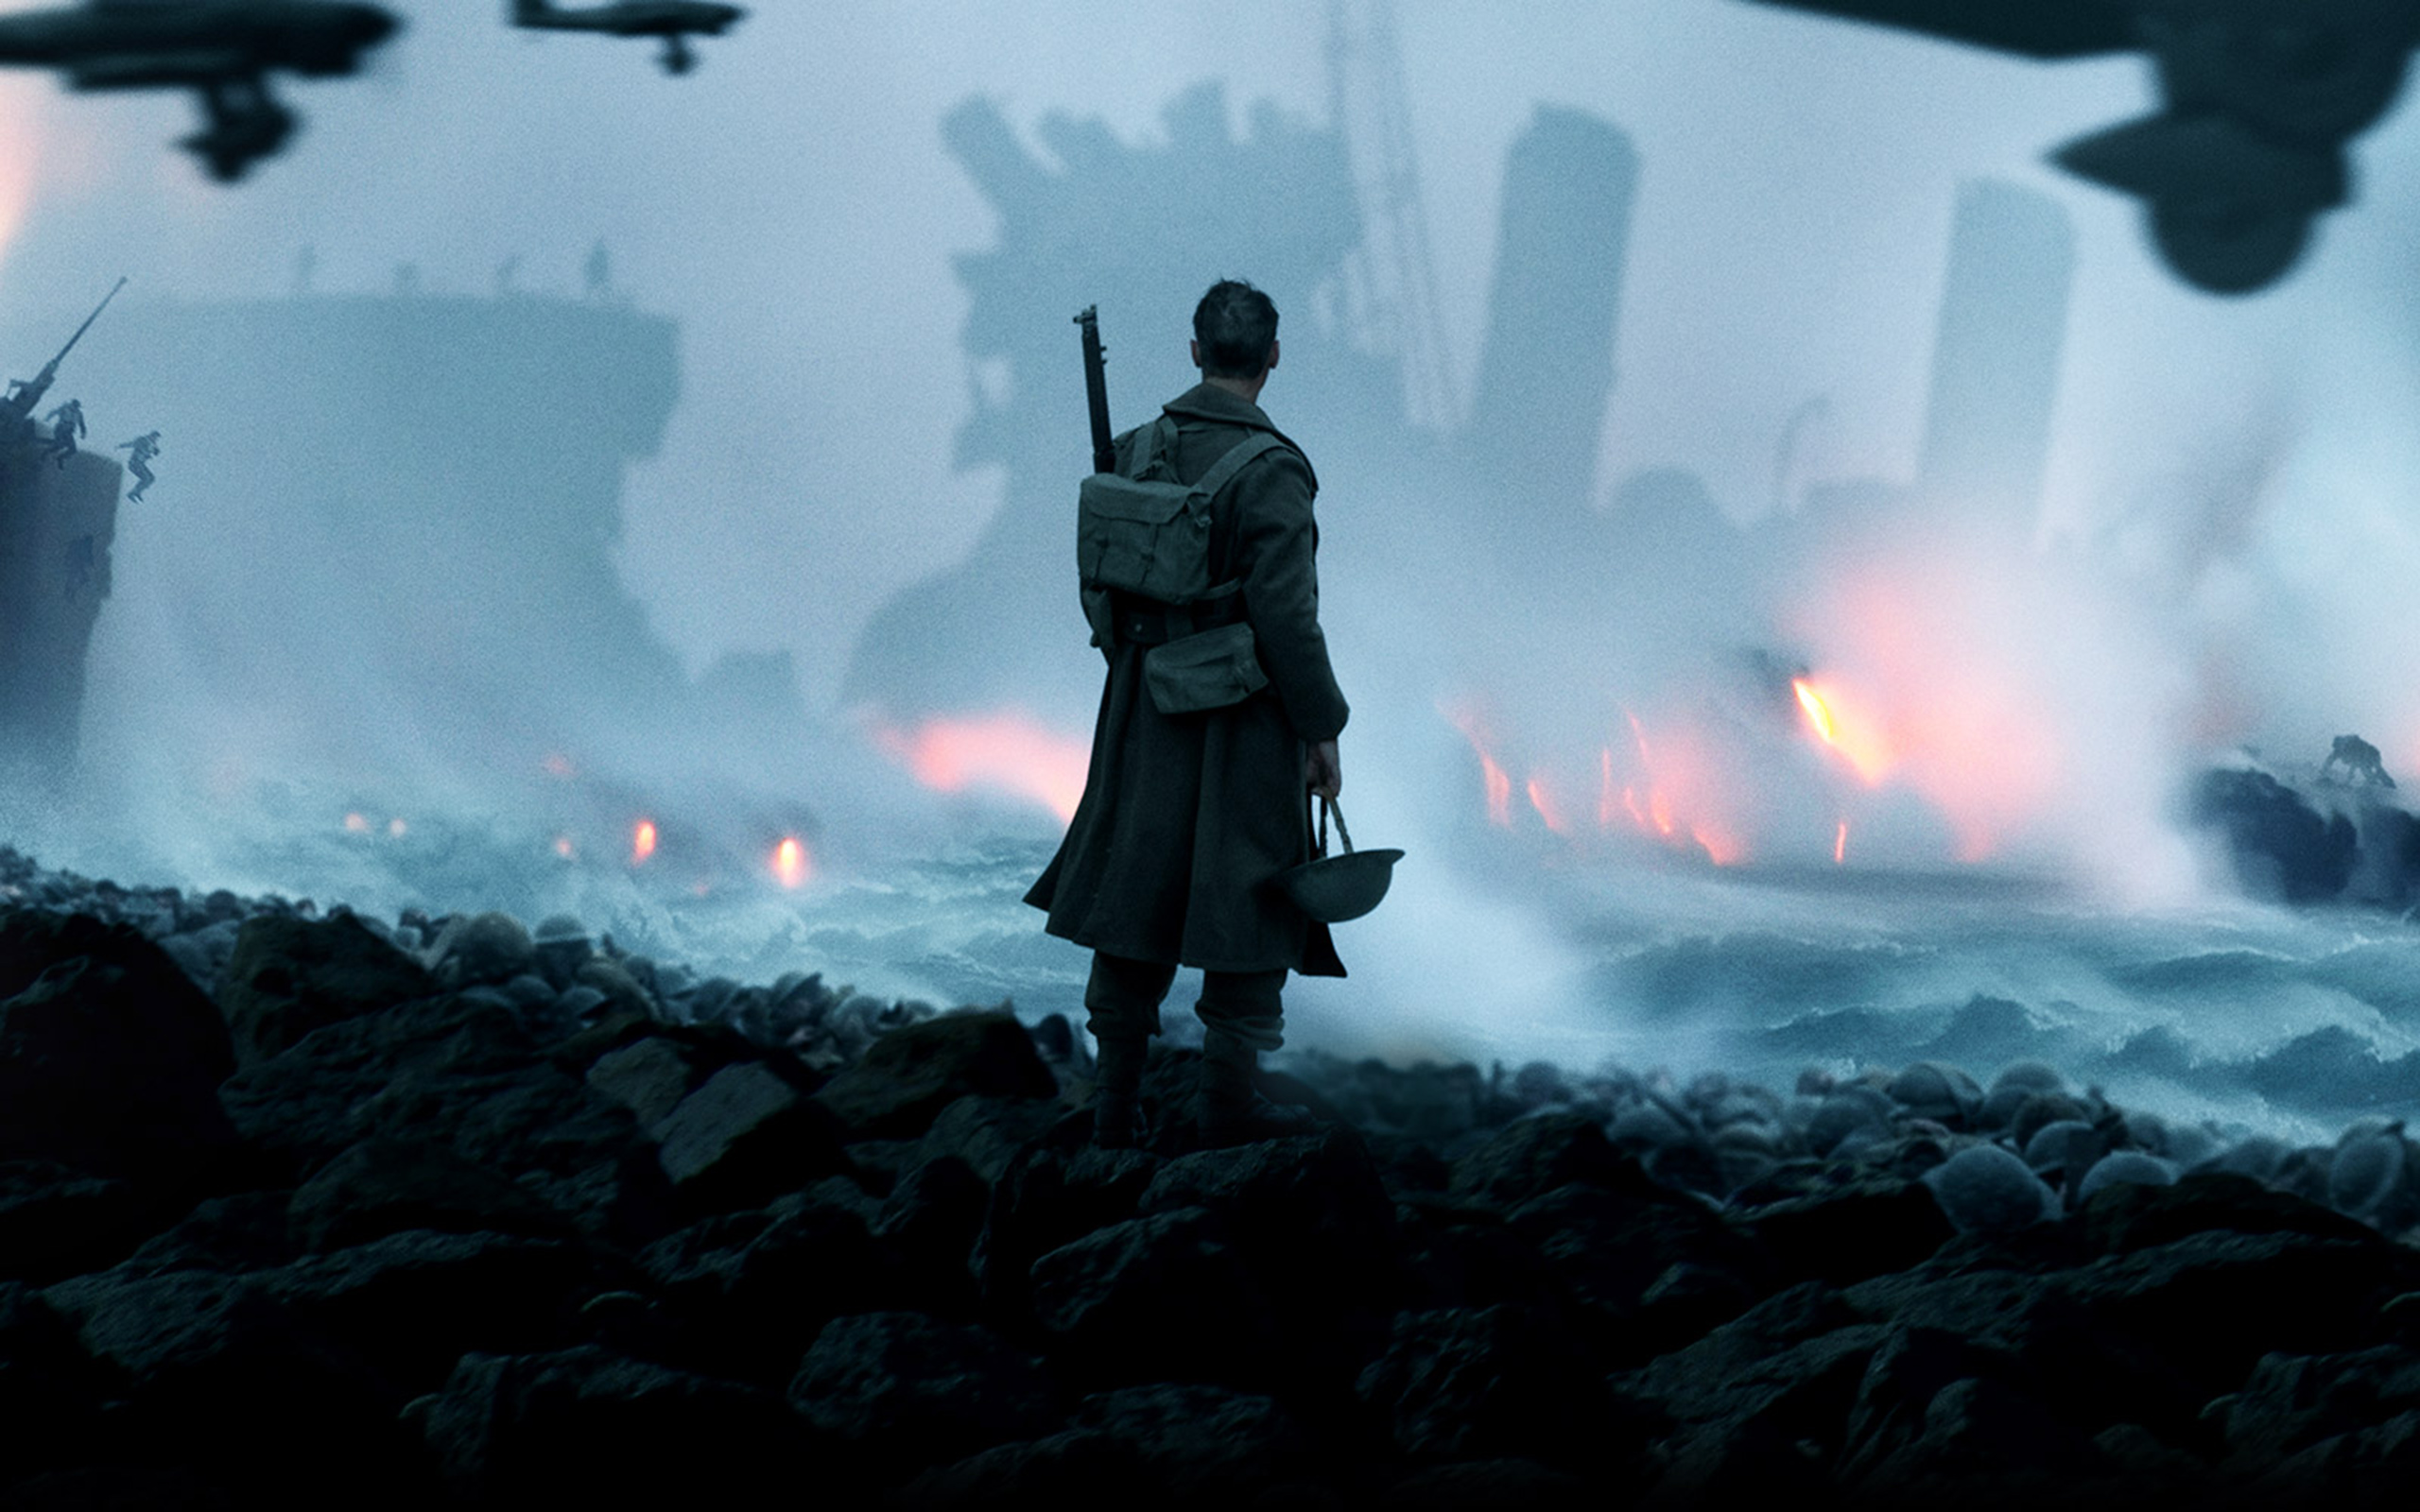 1920x1080 Dunkirk 2017 Movie Laptop Full Hd 1080p Hd 4k Wallpapers